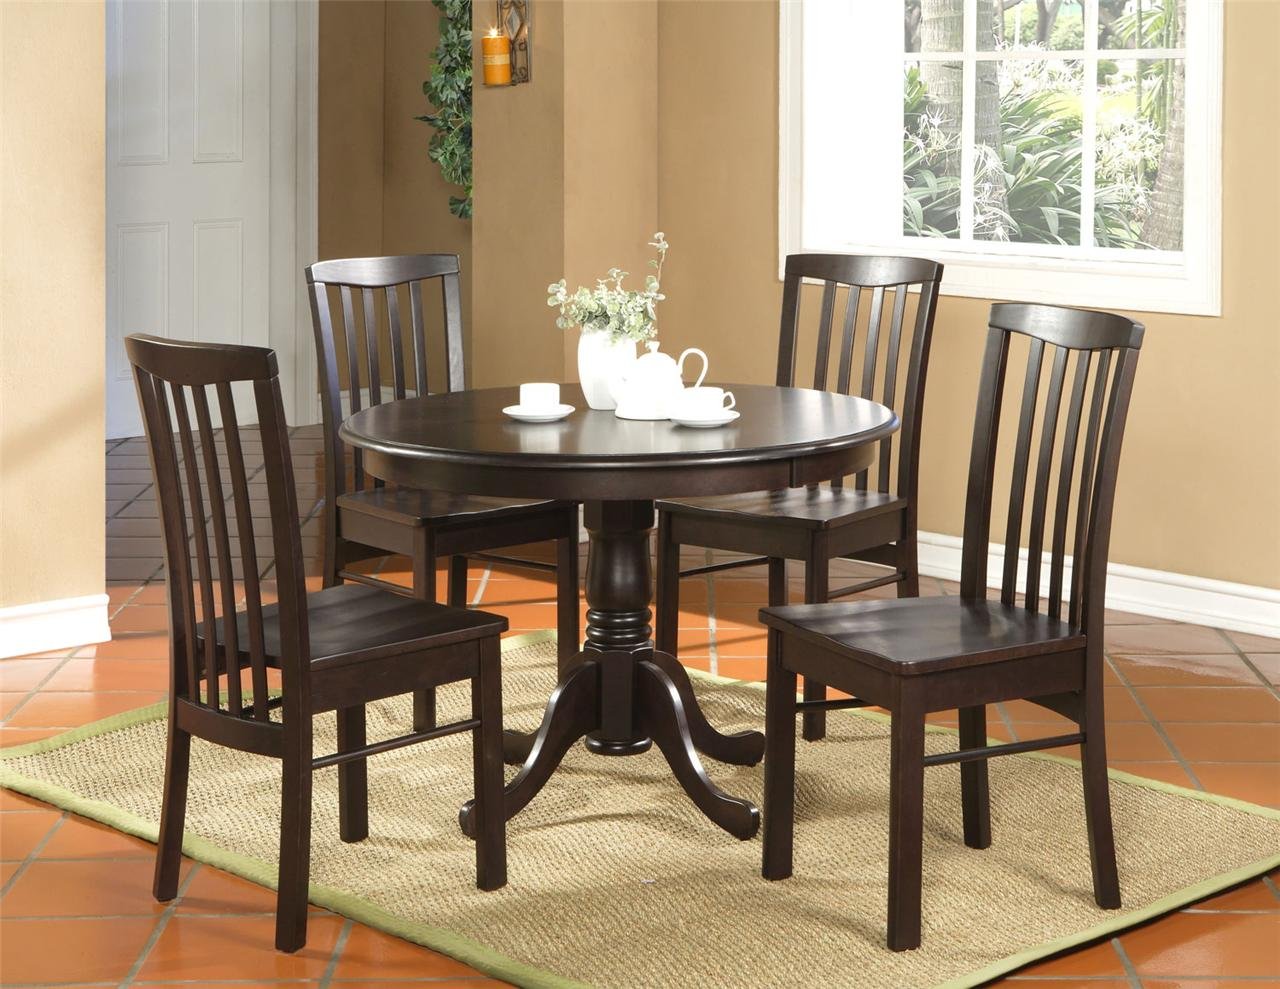 5pc round kitchen dinette set table and 4 chairs walnut ebay for Kitchen dinette sets